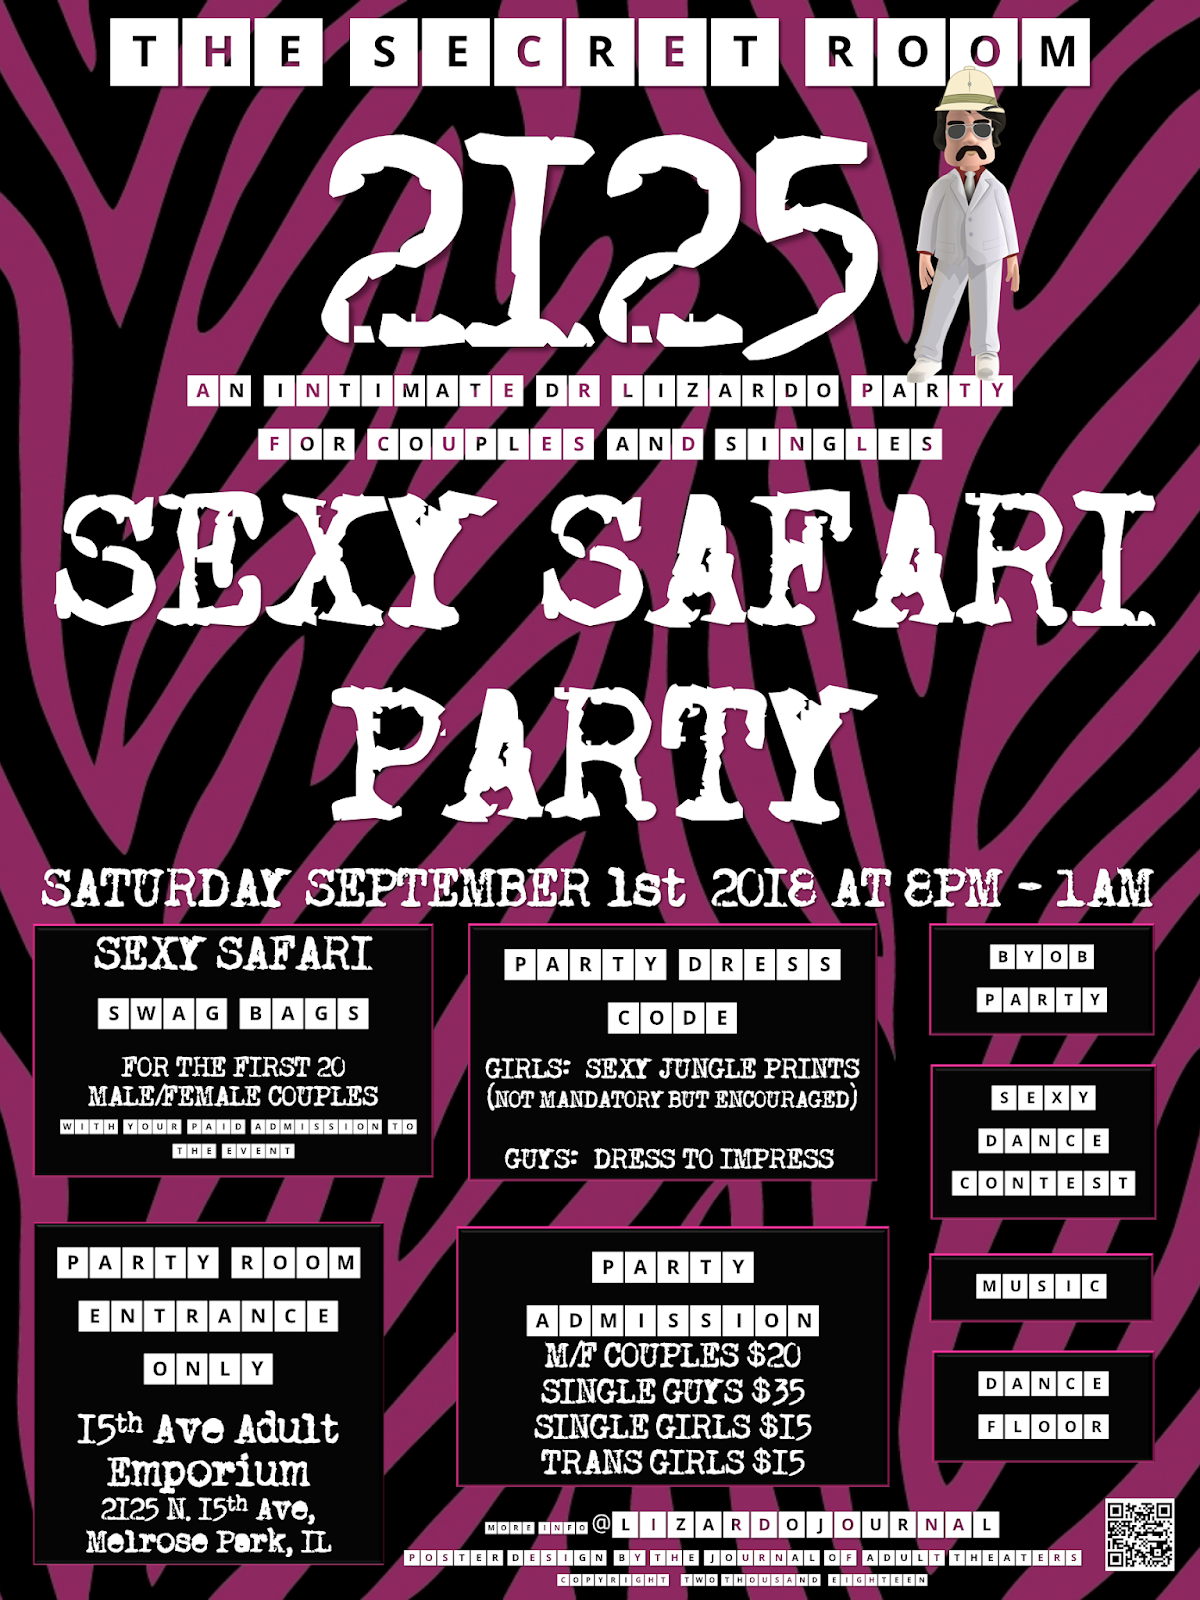 The Secret Room 2125: Sexy Safari Party at 15th Ave. Adult Theater Party Room in Chicago!